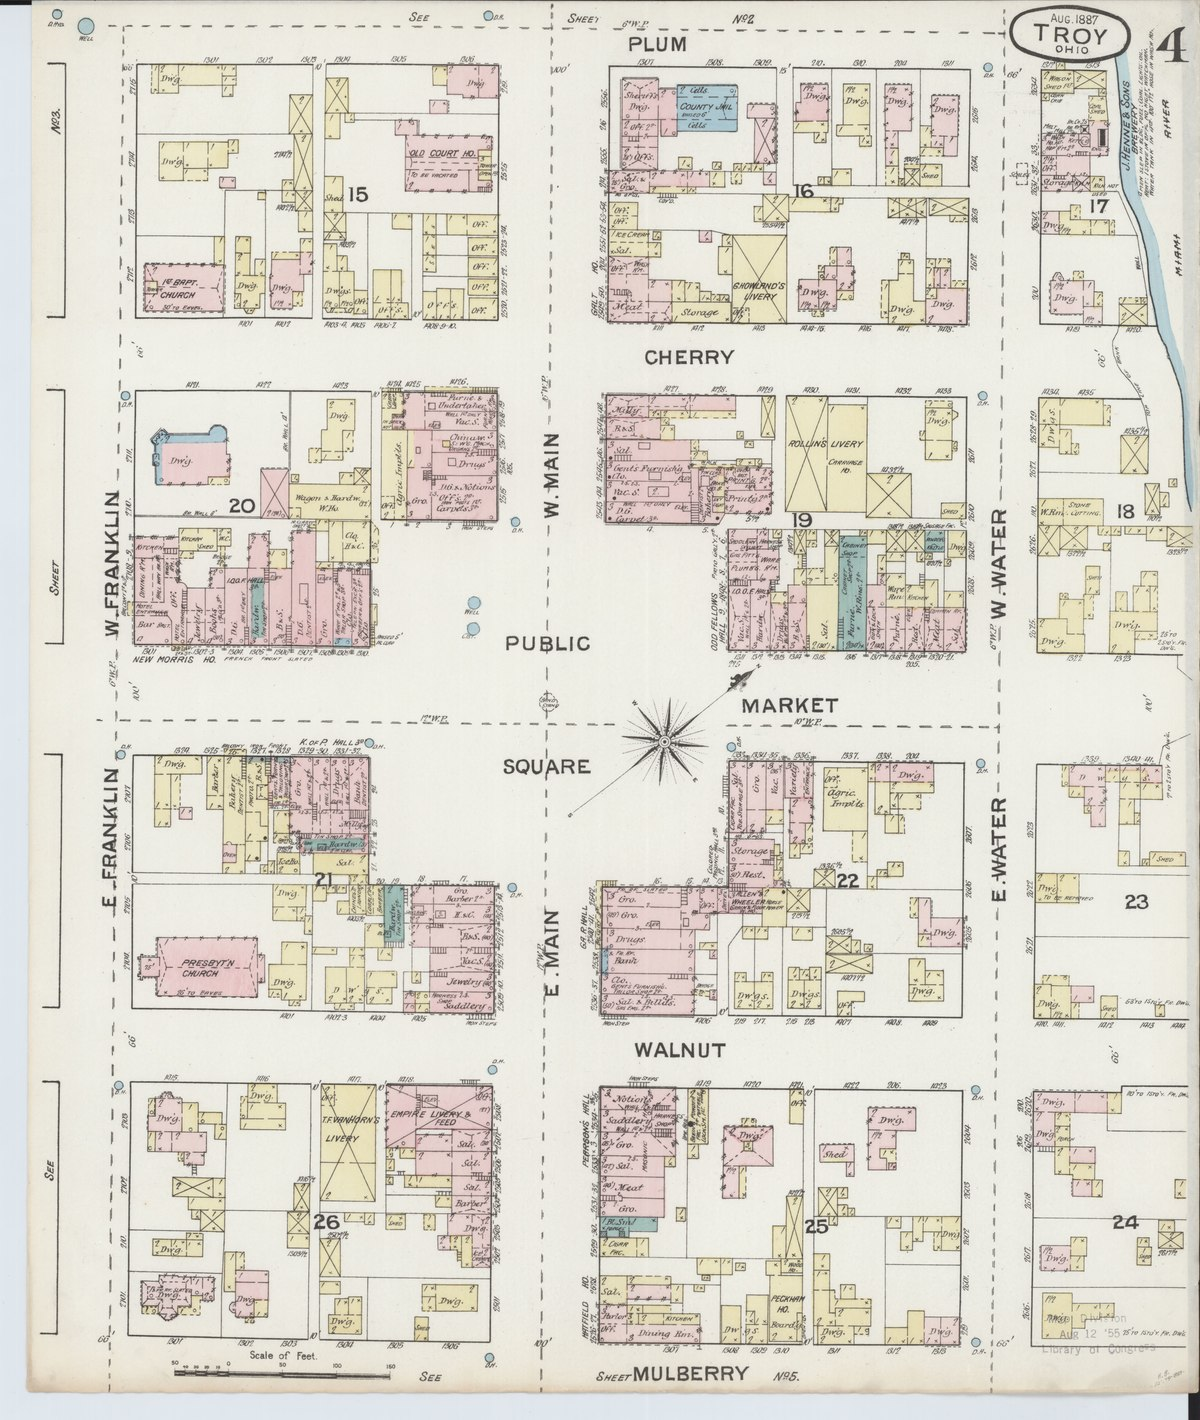 file:sanborn fire insurance map from troy, miami county